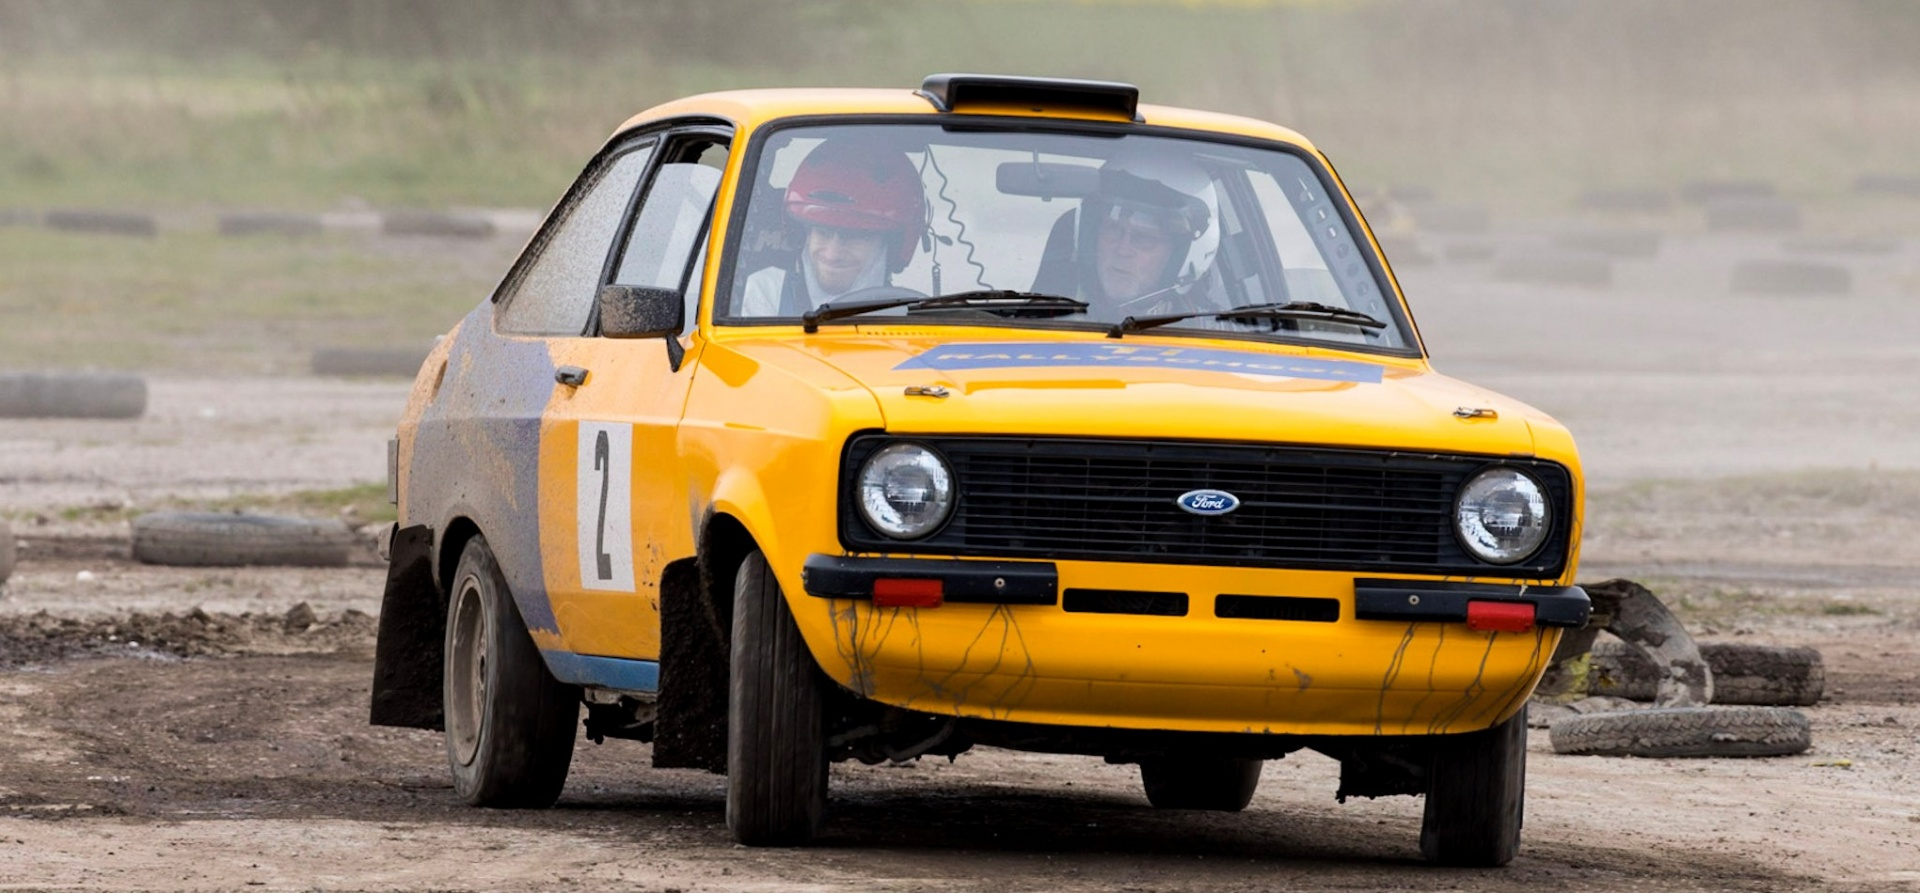 Full Day Rally Driving Introductory Experience in Yorkshire-8